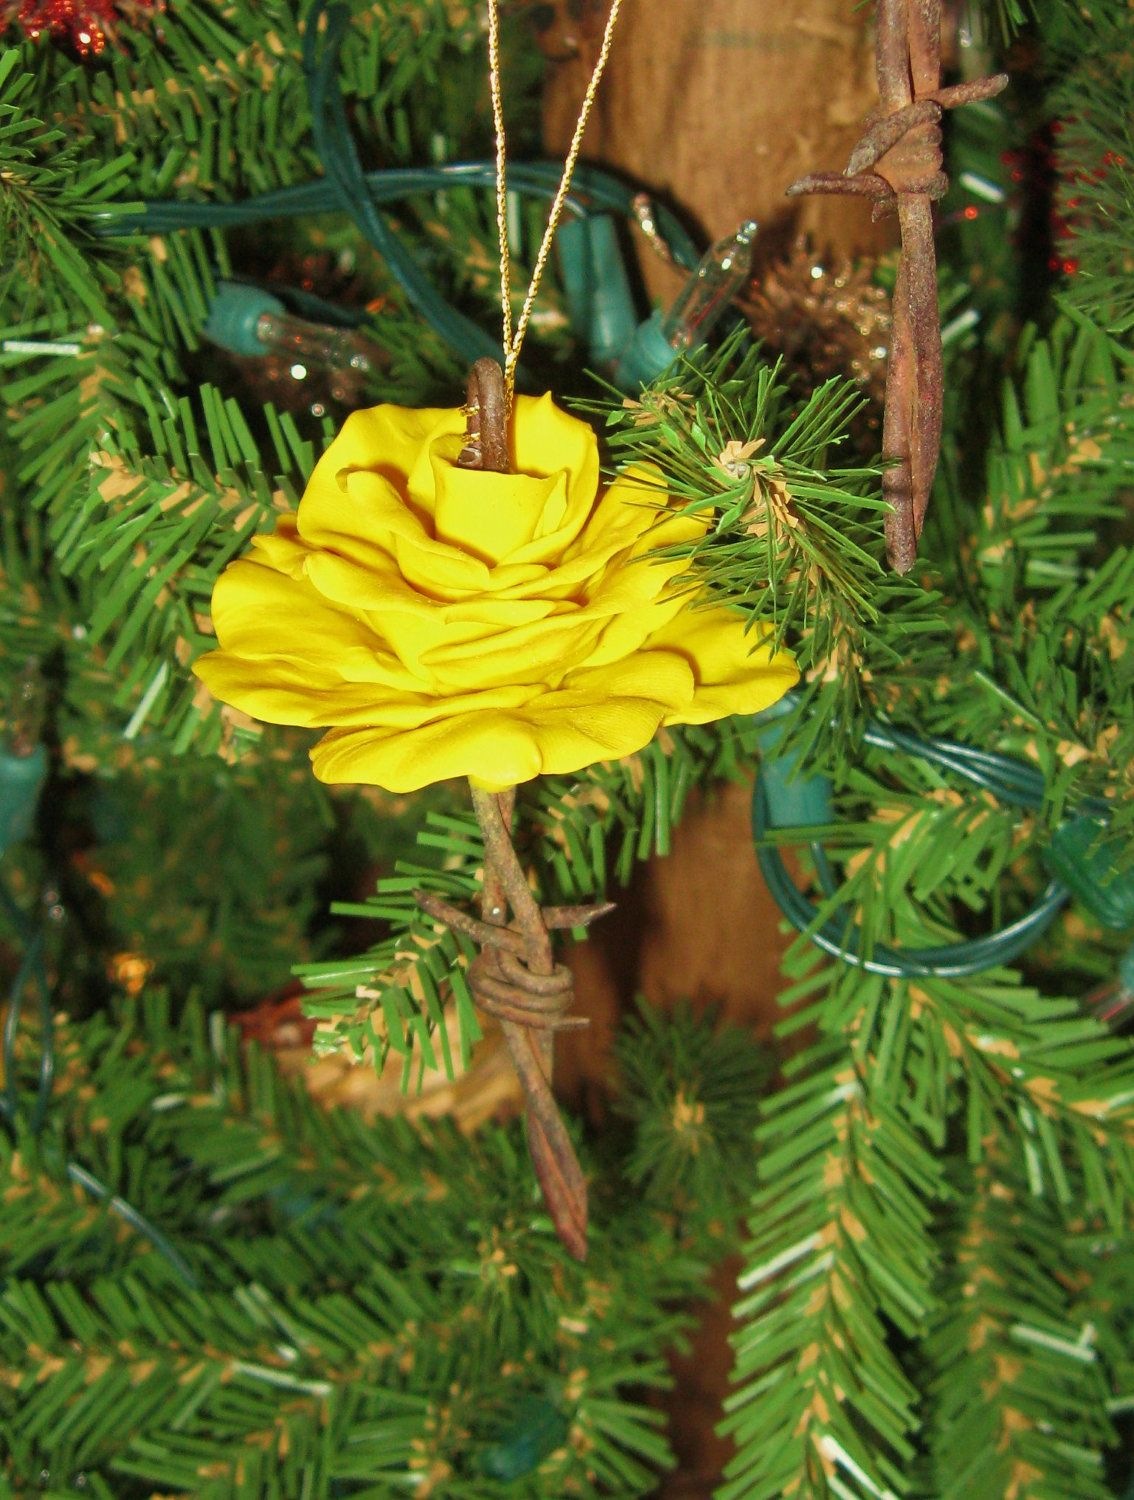 Rose christmas ornament - Yellow Rose Christmas Ornament Made From Polymer Clay